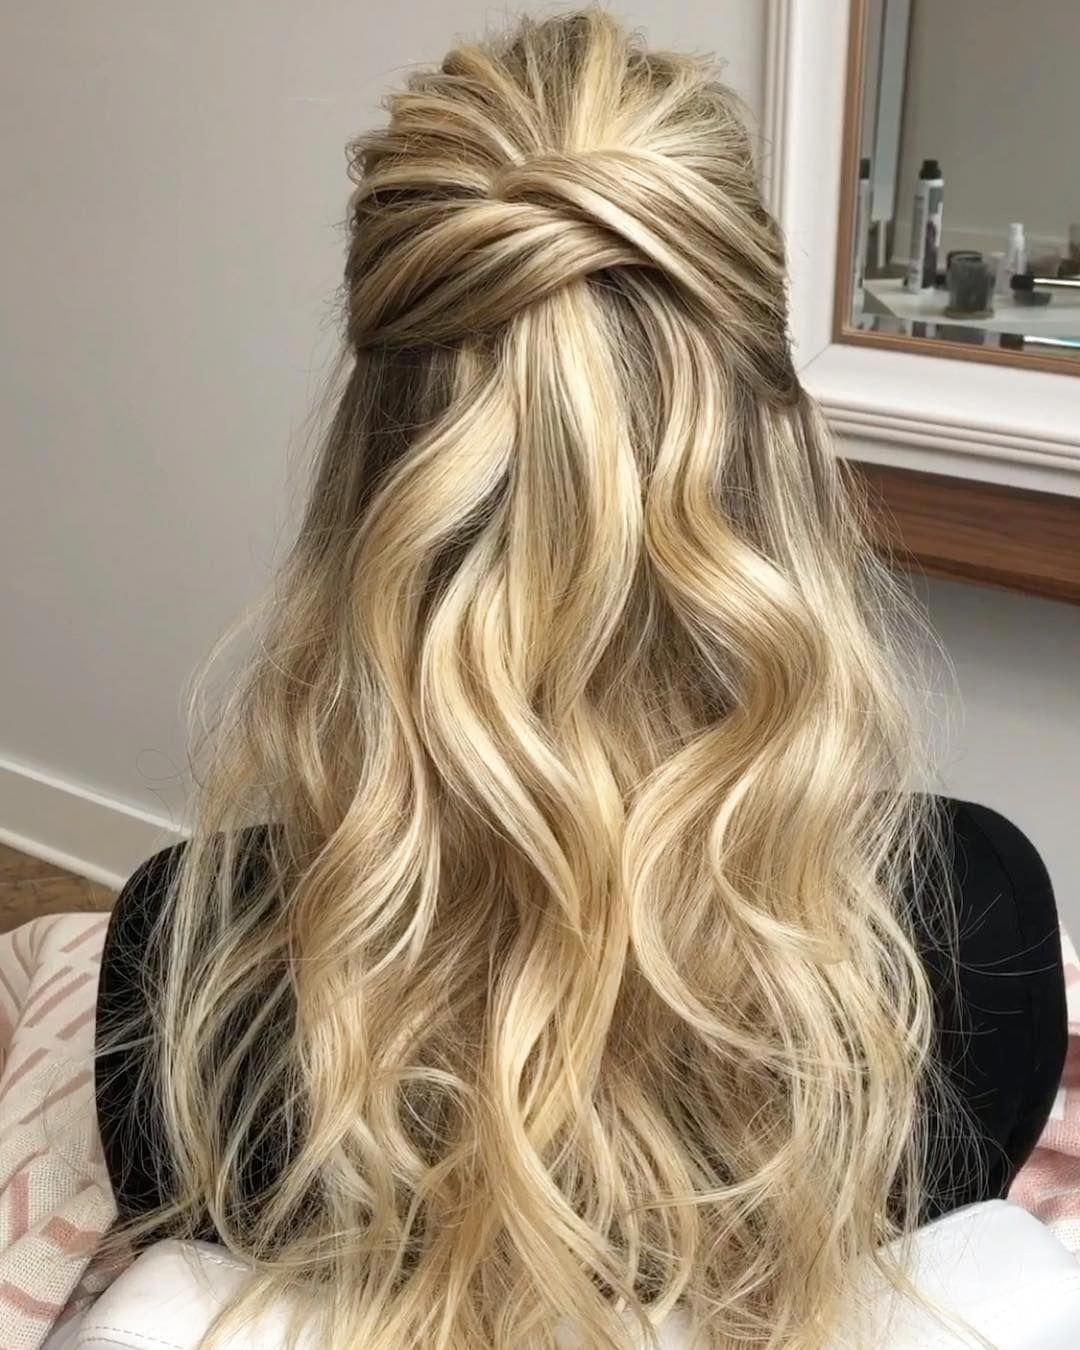 Whether You Re A Bridesmaid Or A Maid Of Honor These Gorgeous Wedding Updos And Hairstyles For Short In 2020 Bridesmaid Hair Straight Hair Styles Bridesmaid Hair Down